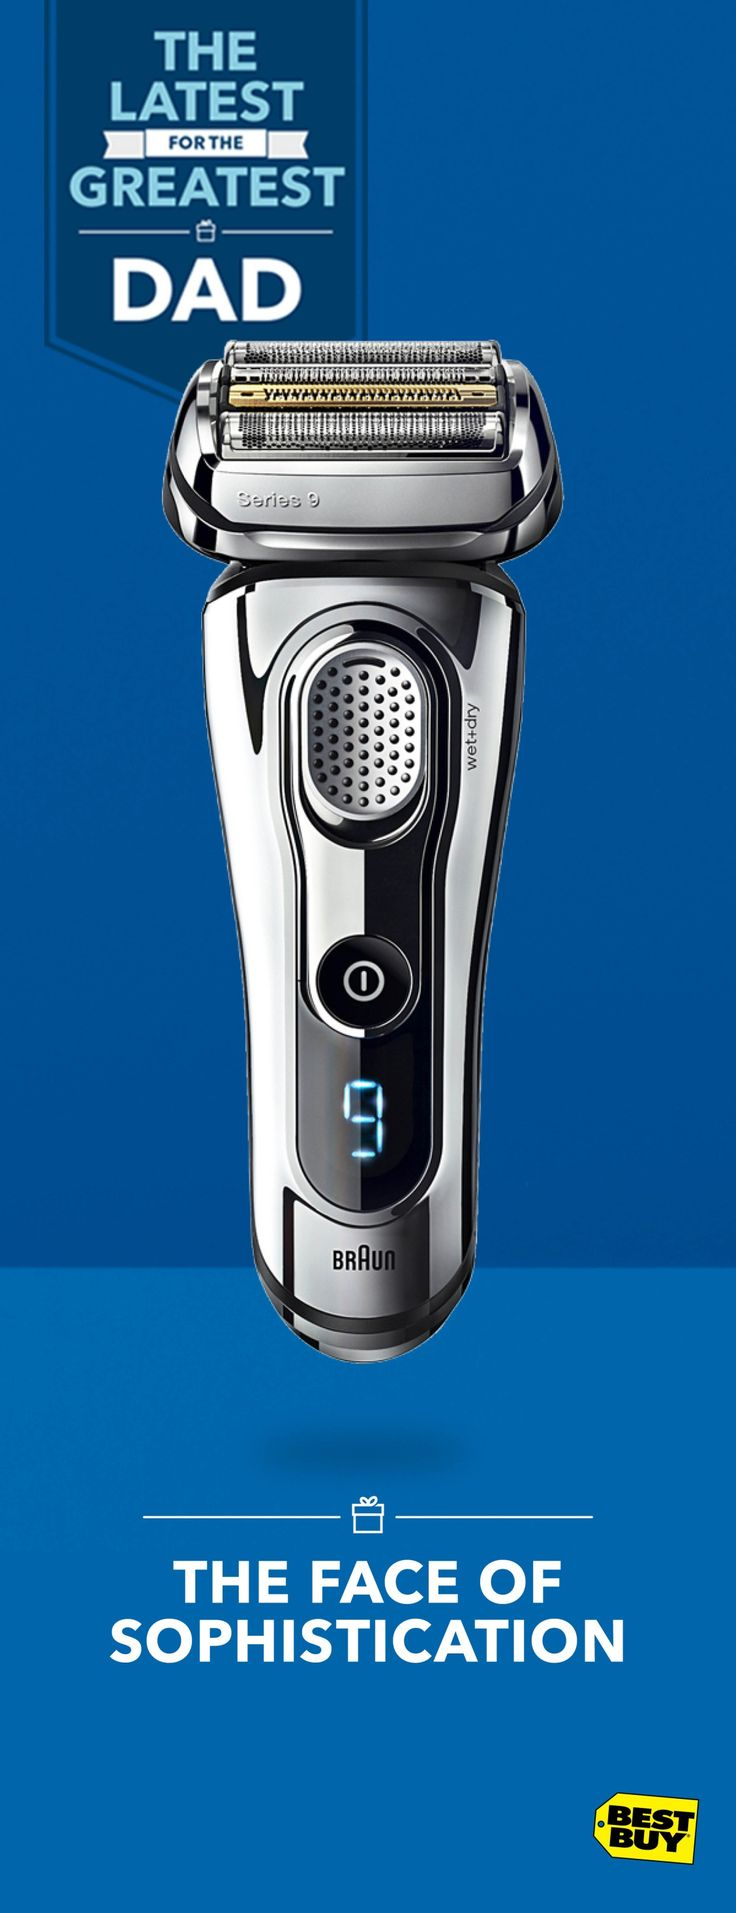 This exquisitely designed Braun Series 9 electric razor makes short work of even the most difficult hairs, whether it's at the sink, in the shower or on the drive to the office. If Dad likes sleek cheeks, he can lather up with shaving cream for an ultra-smooth finish. Find elegant Father's Day gifts like this and more at Best Buy.